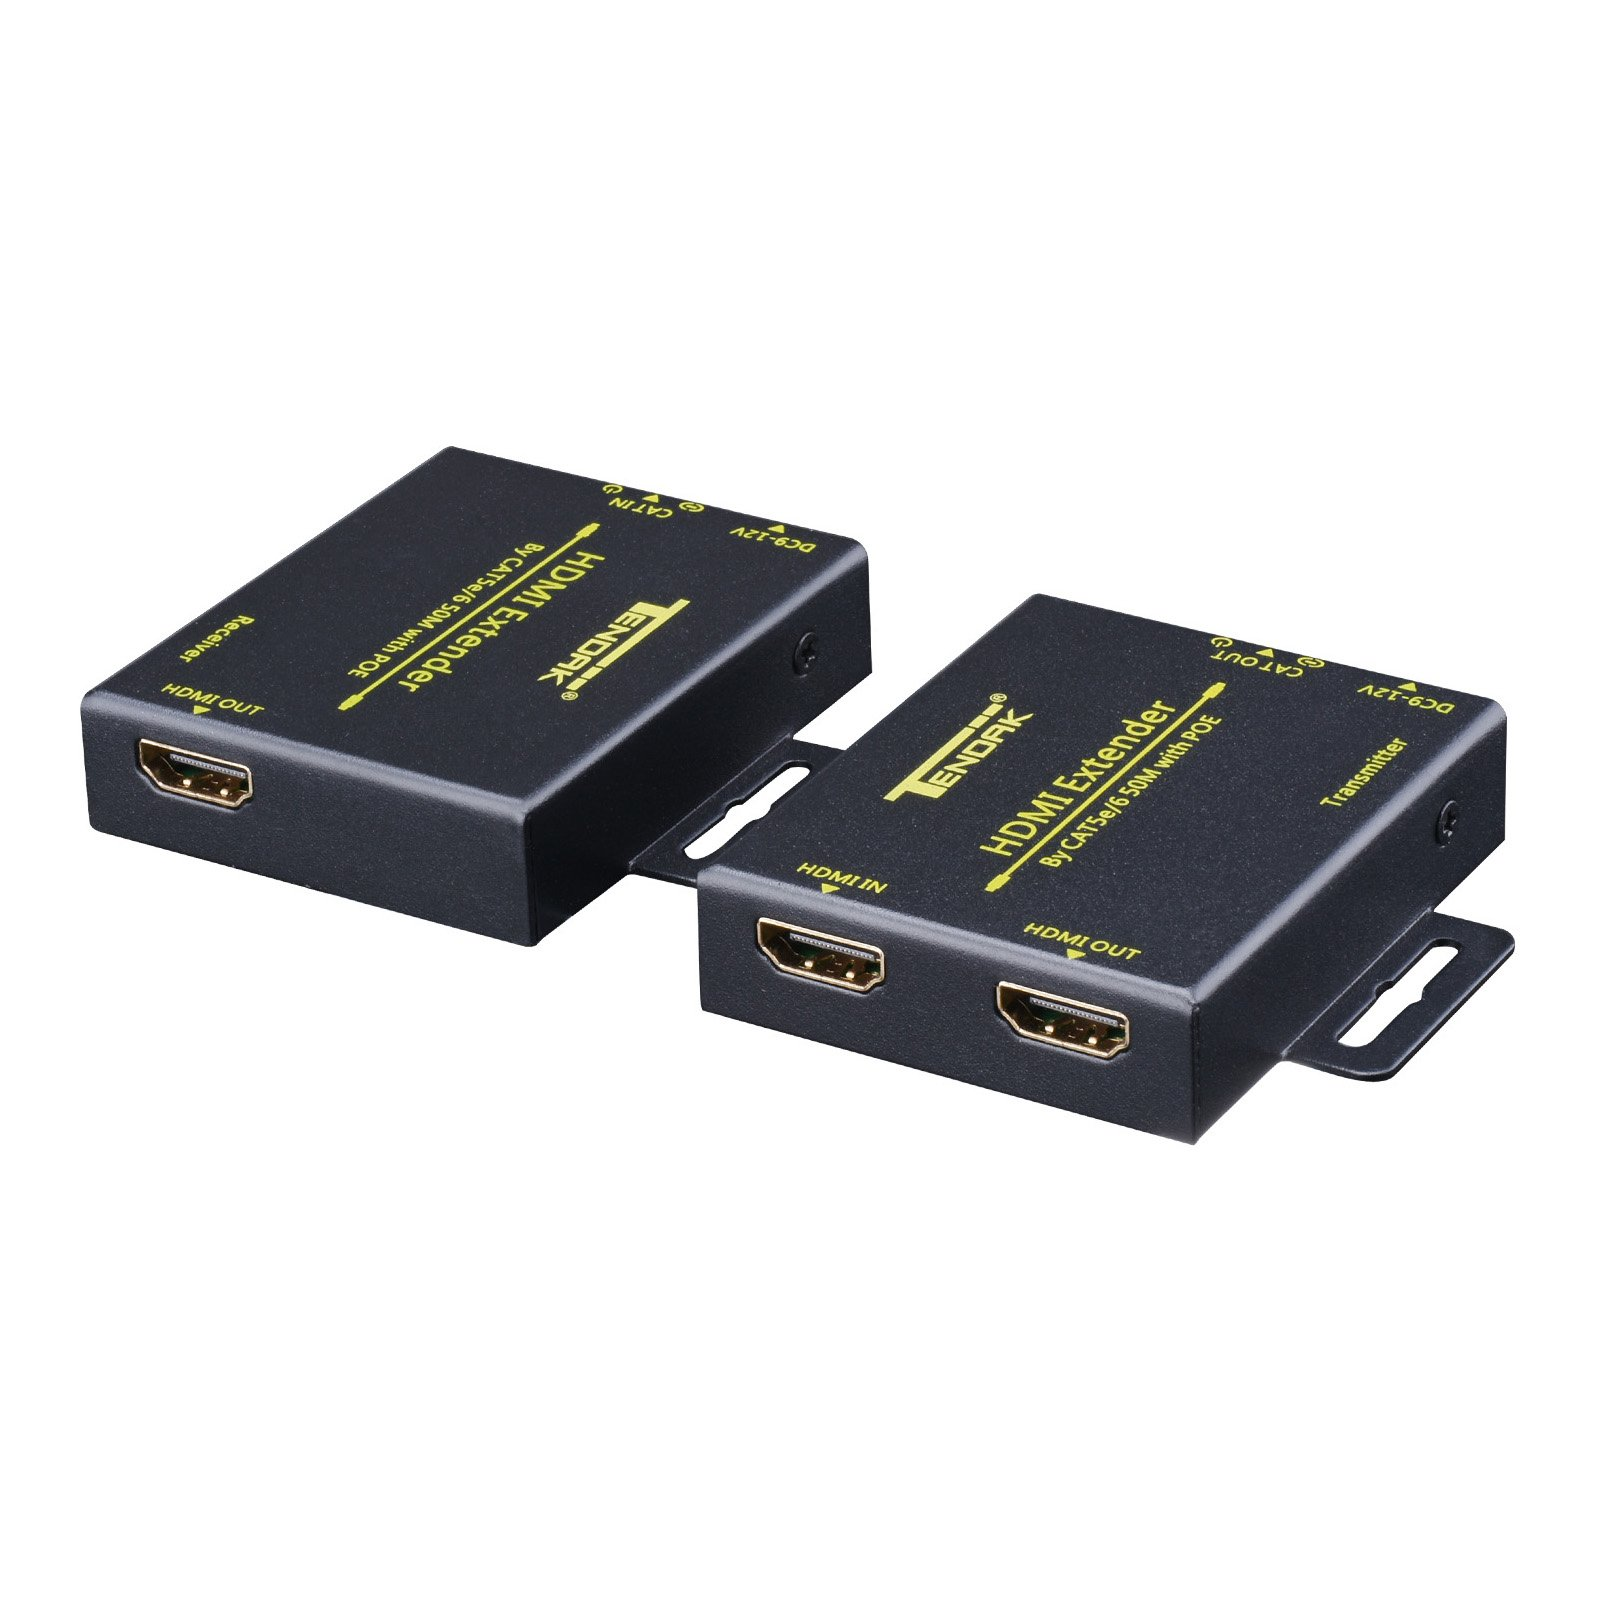 1x2 HDMI Splitter Extender Over CAT5e CAT6 RJ45 Up To 164FT 1080p w// 2 Receivers